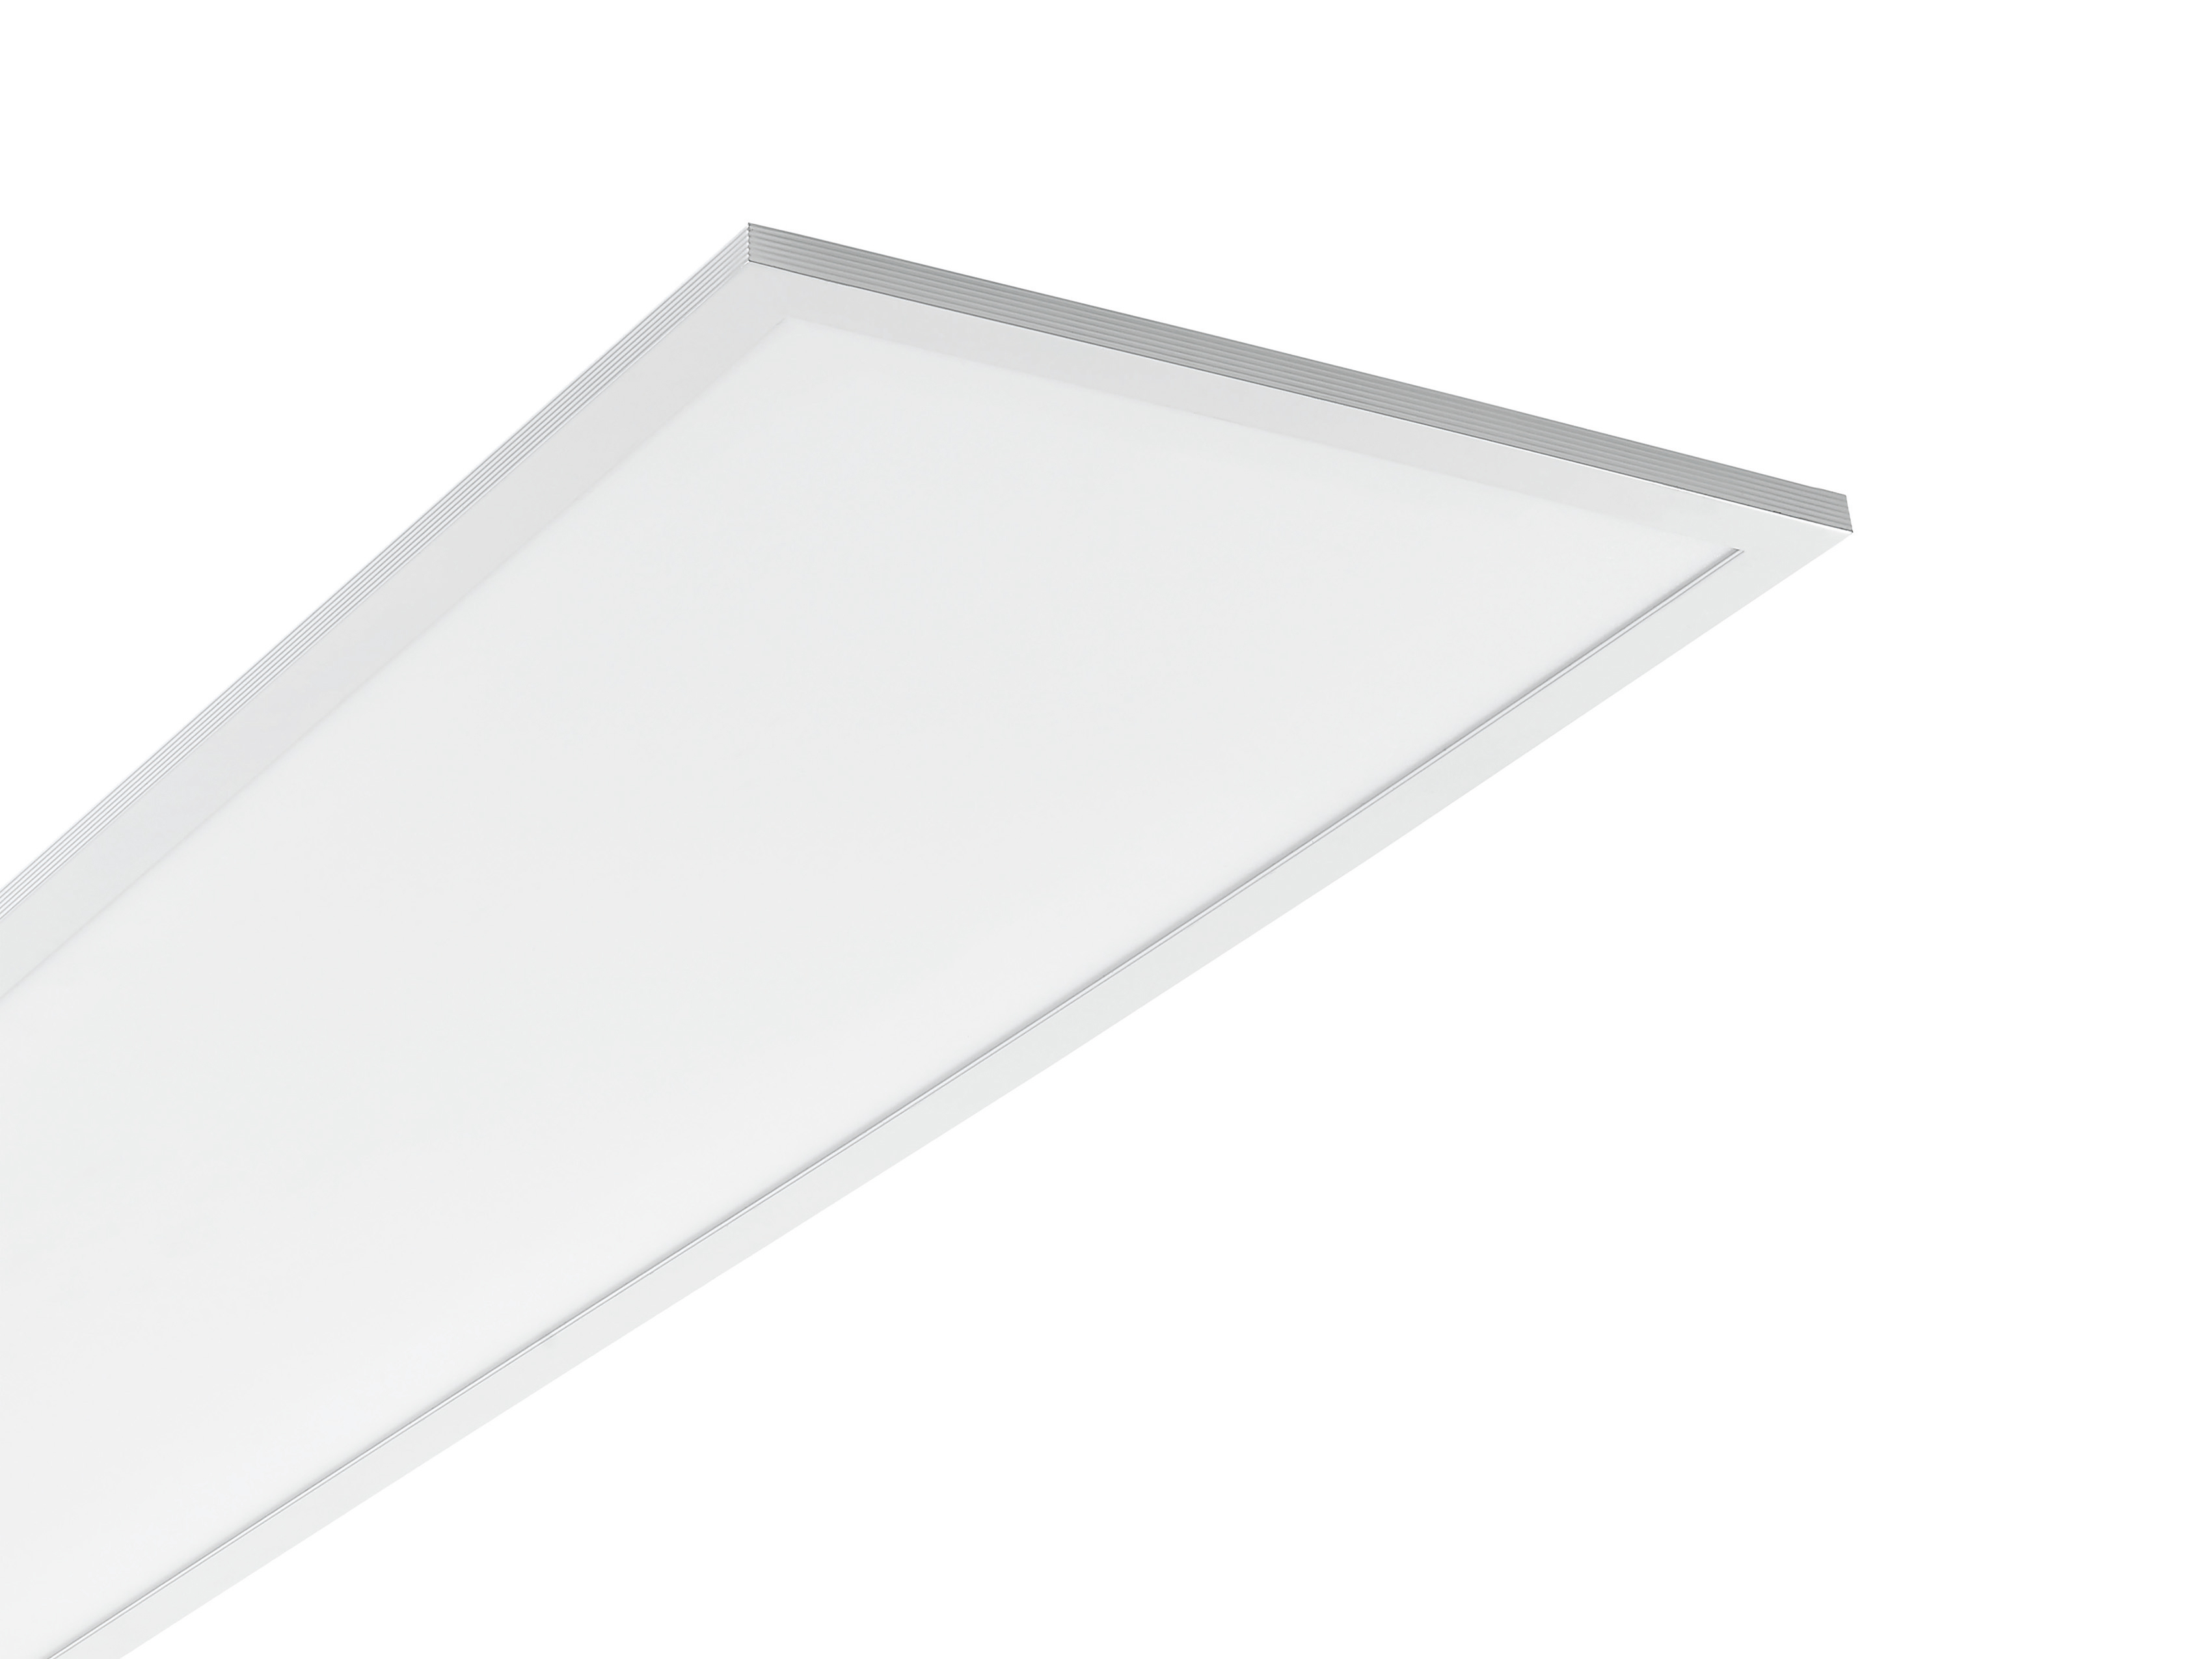 Plafoniera Ufficio Led : Start flat panel led moduli da 1200 x 300 mm sylvania lighting